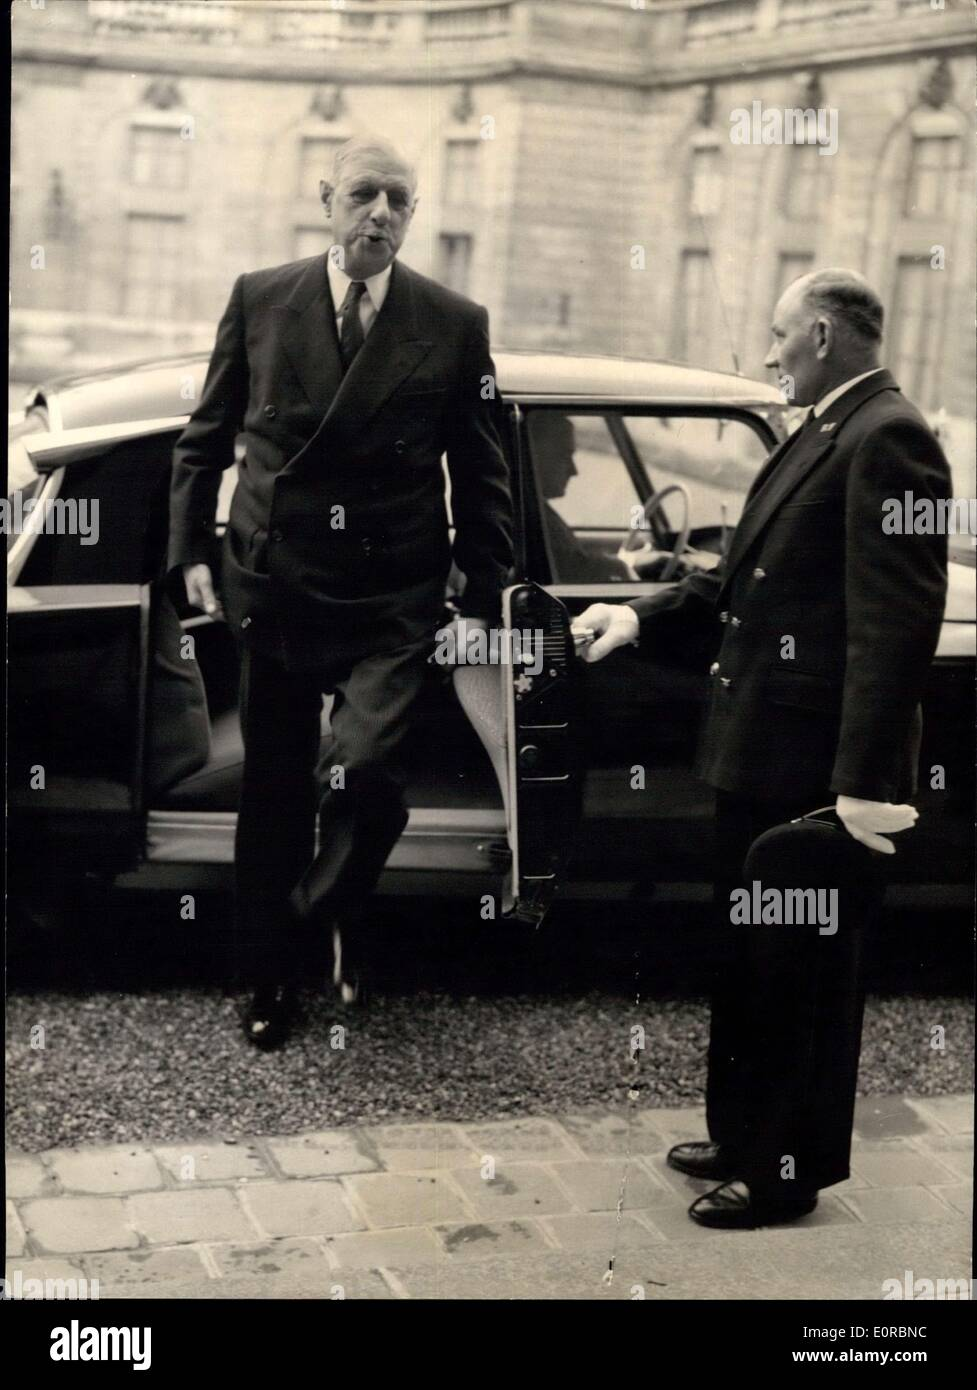 Dec. 22, 1958 - Counsel of the ministers at the Elysee; Photo Shows General de Gaulle arriving for the counsel. - Stock Image